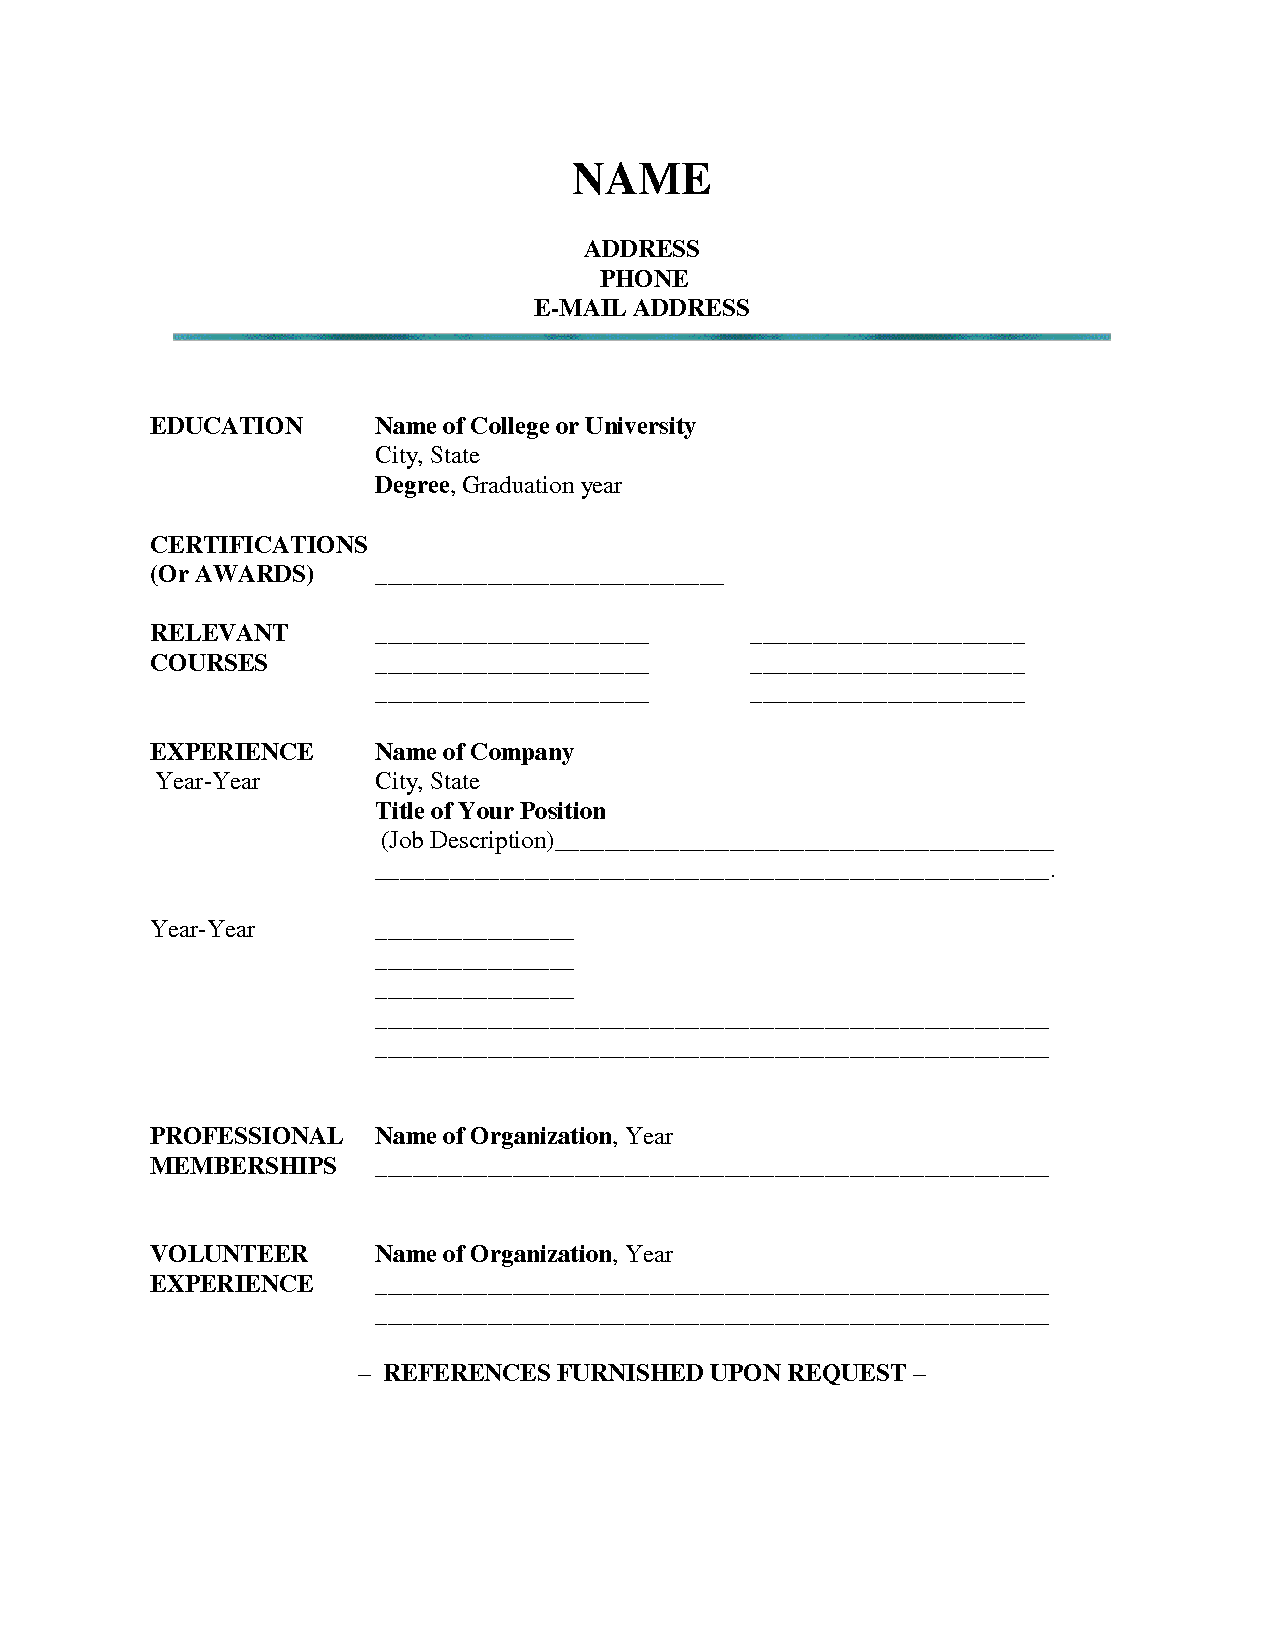 Cv Resume Builder Pro Resume Format Mobile Test Engineer Sample Teaching Builder